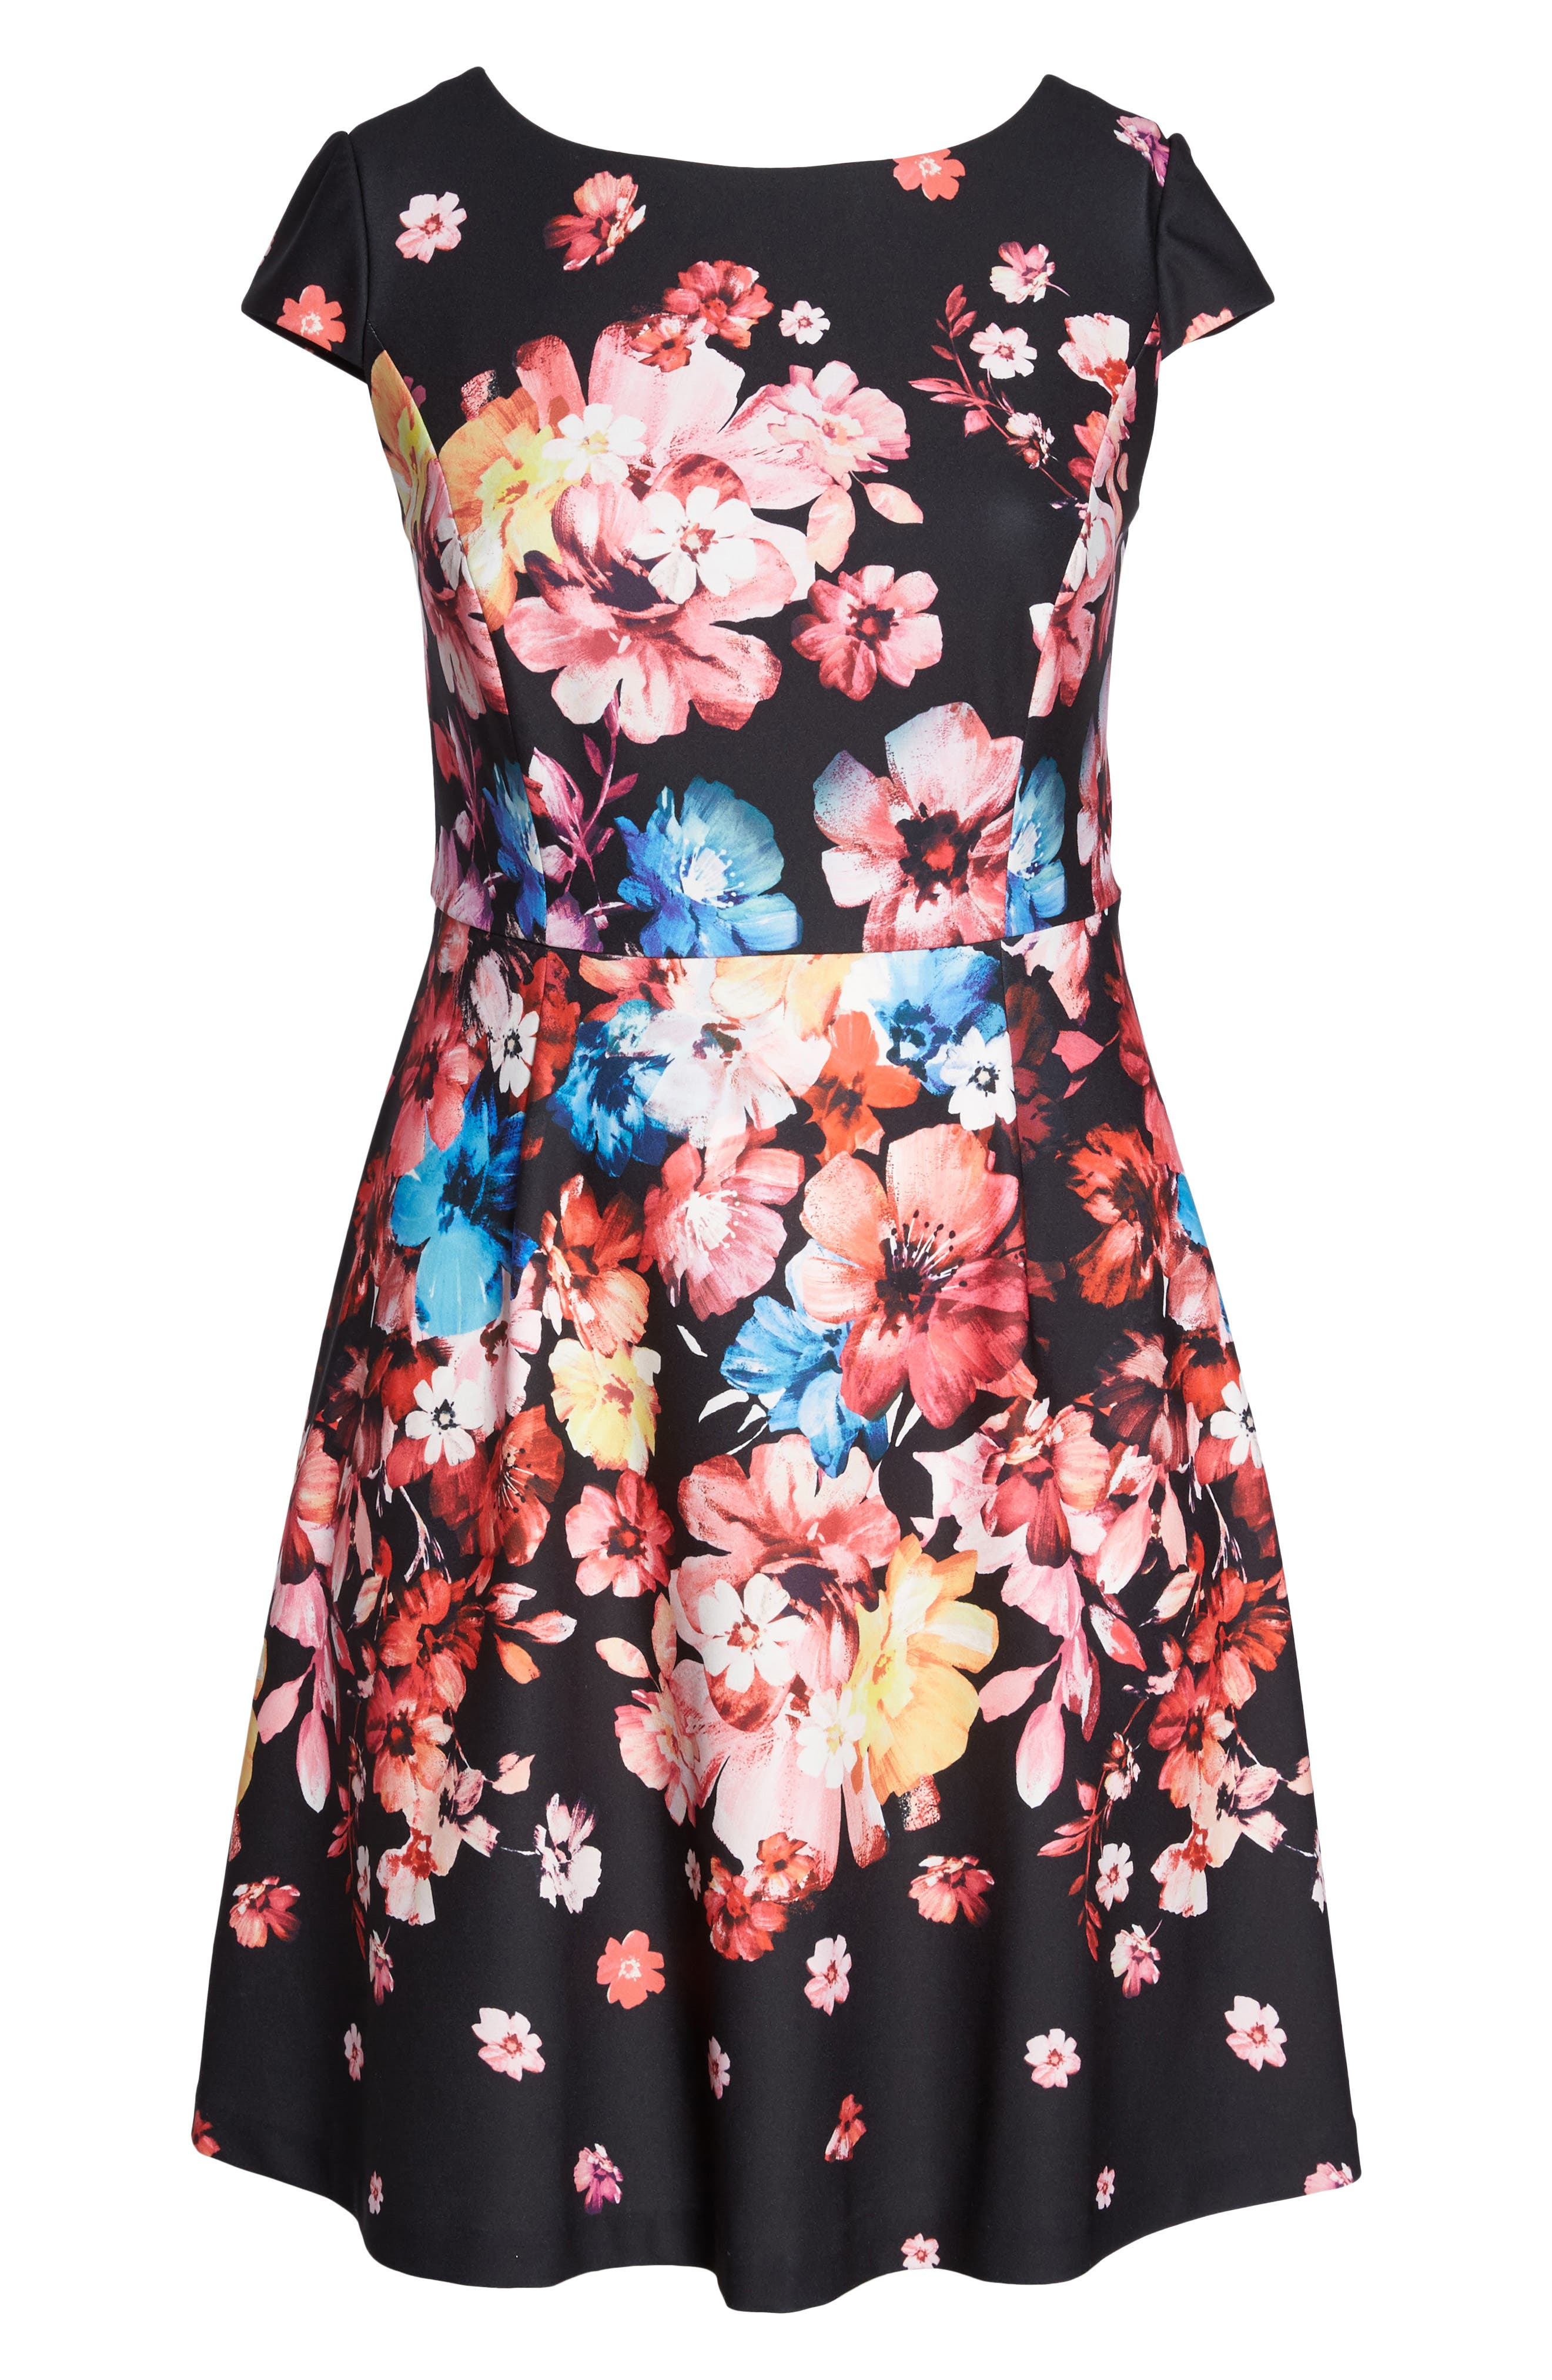 Spring In Bloom Fit & Flare Dress,                             Alternate thumbnail 6, color,                             001